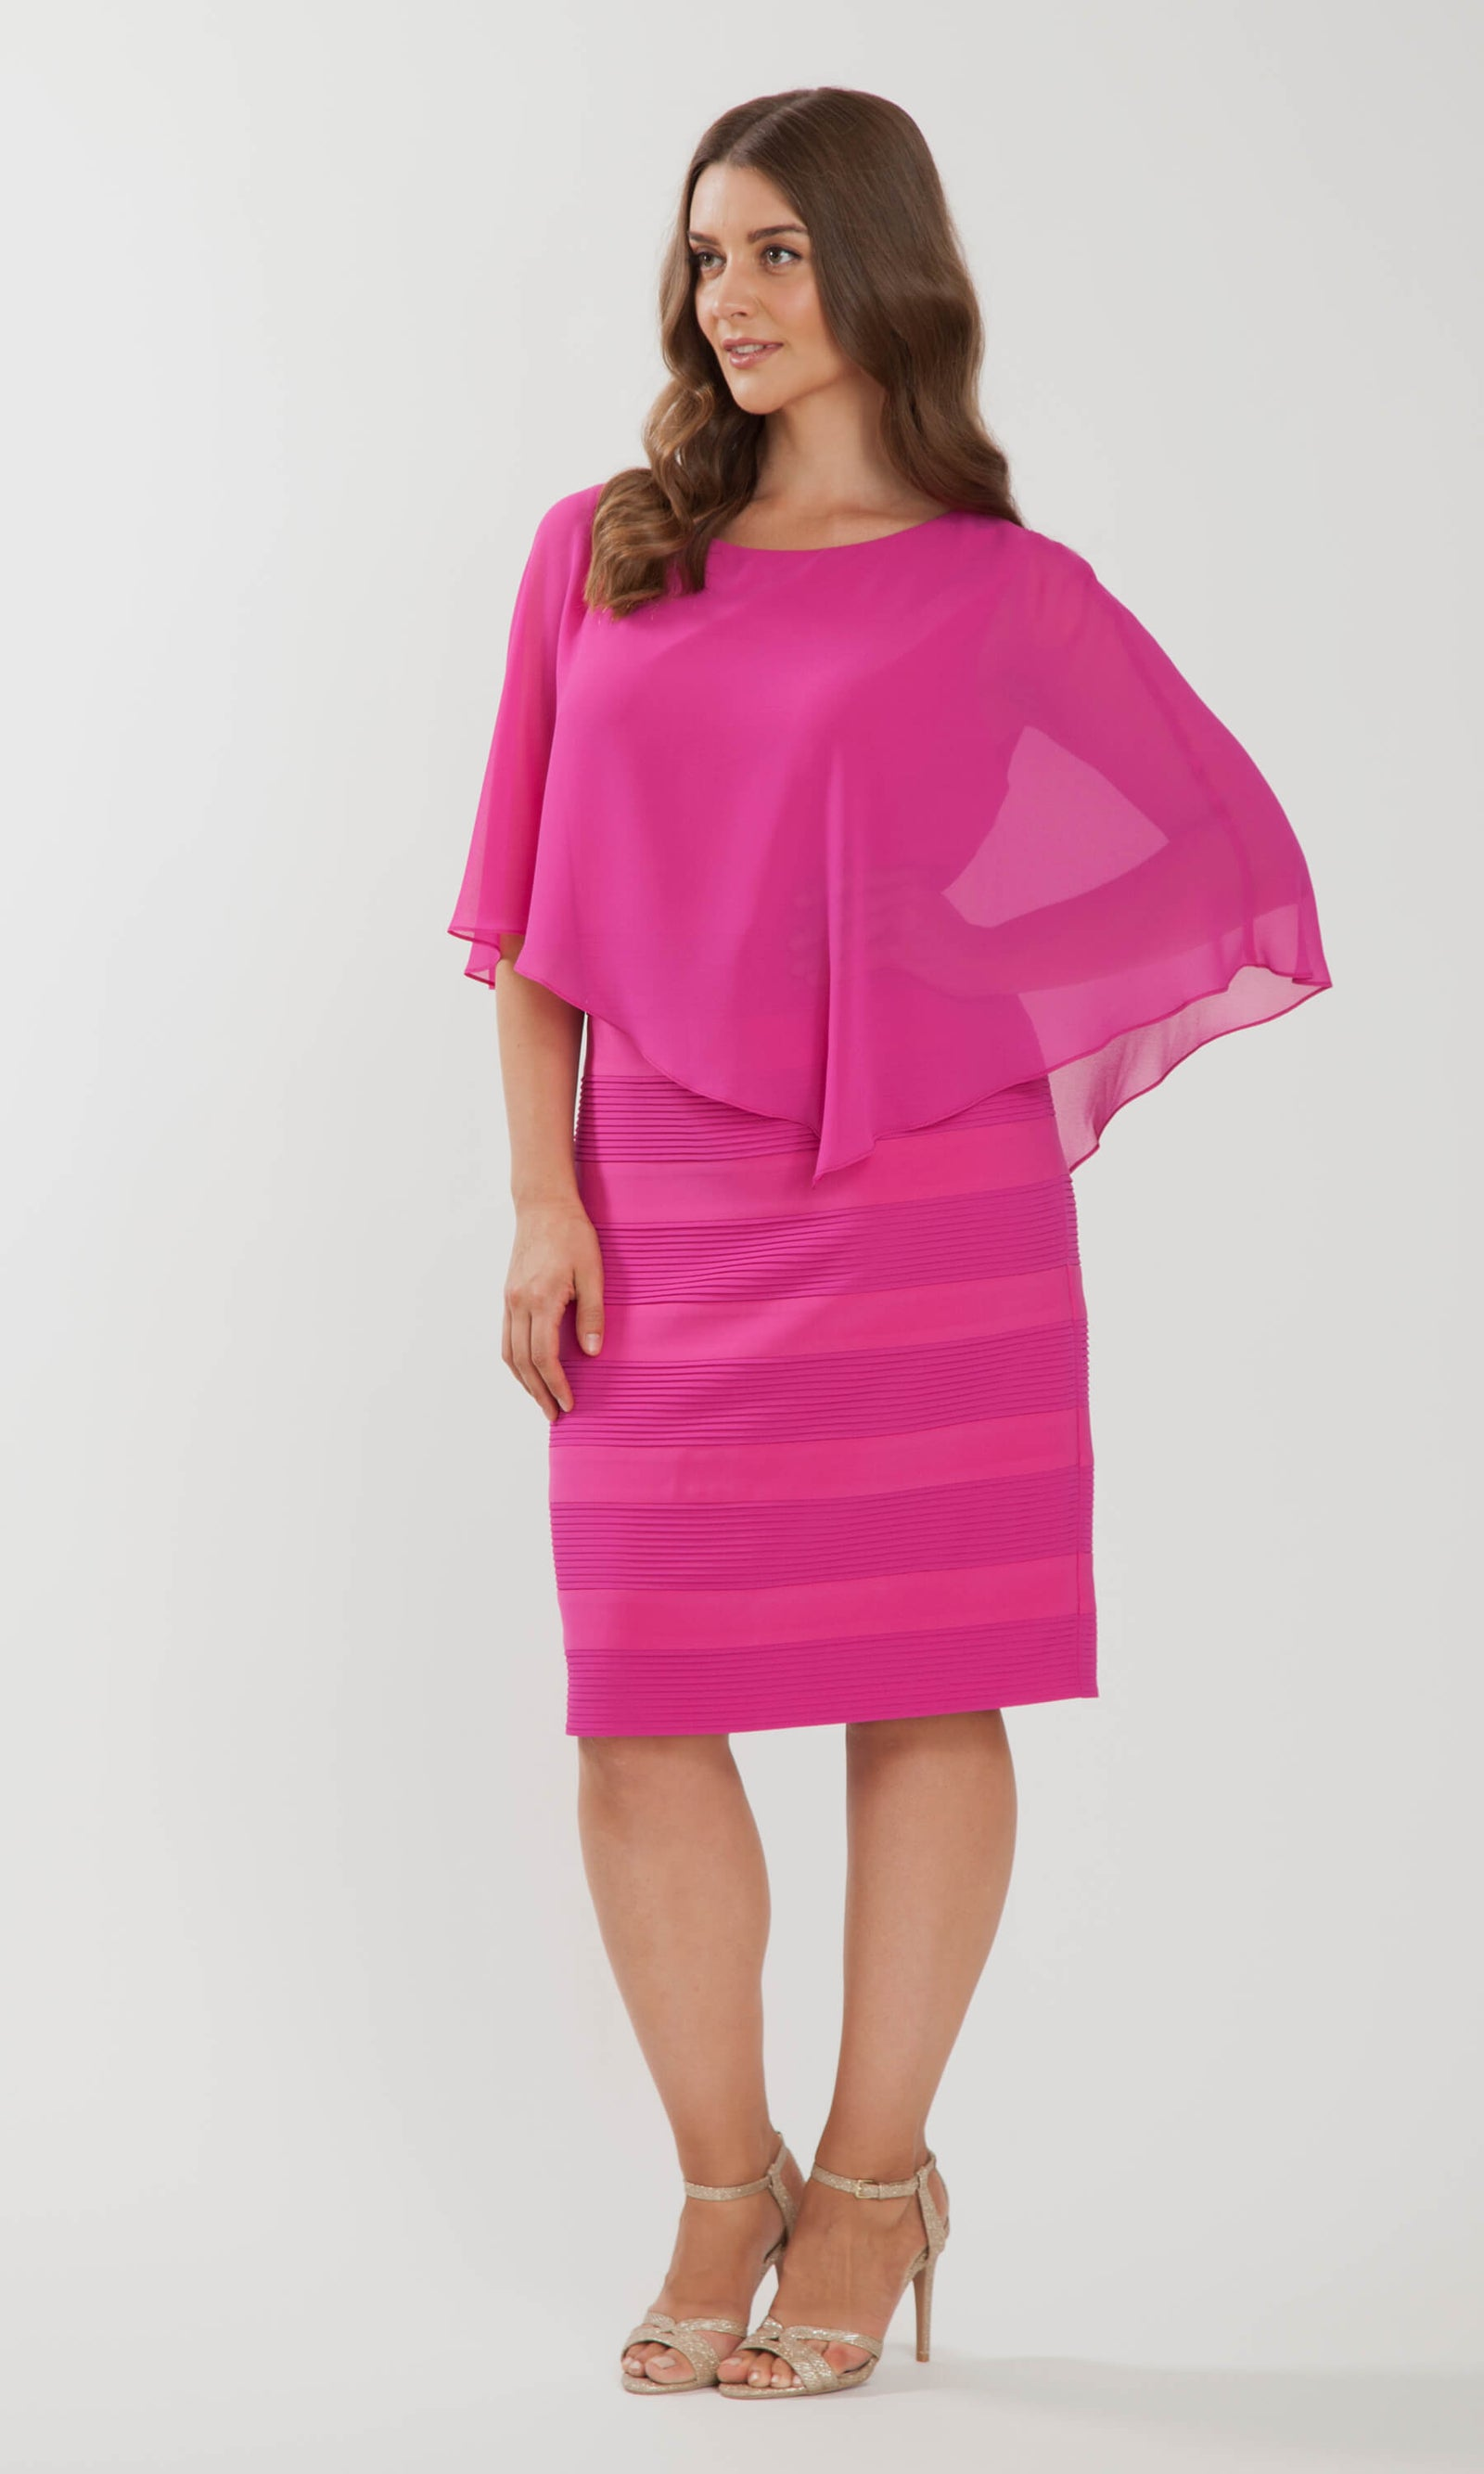 102 Rose Pink Personal Choice Dress With Chiffon Cape